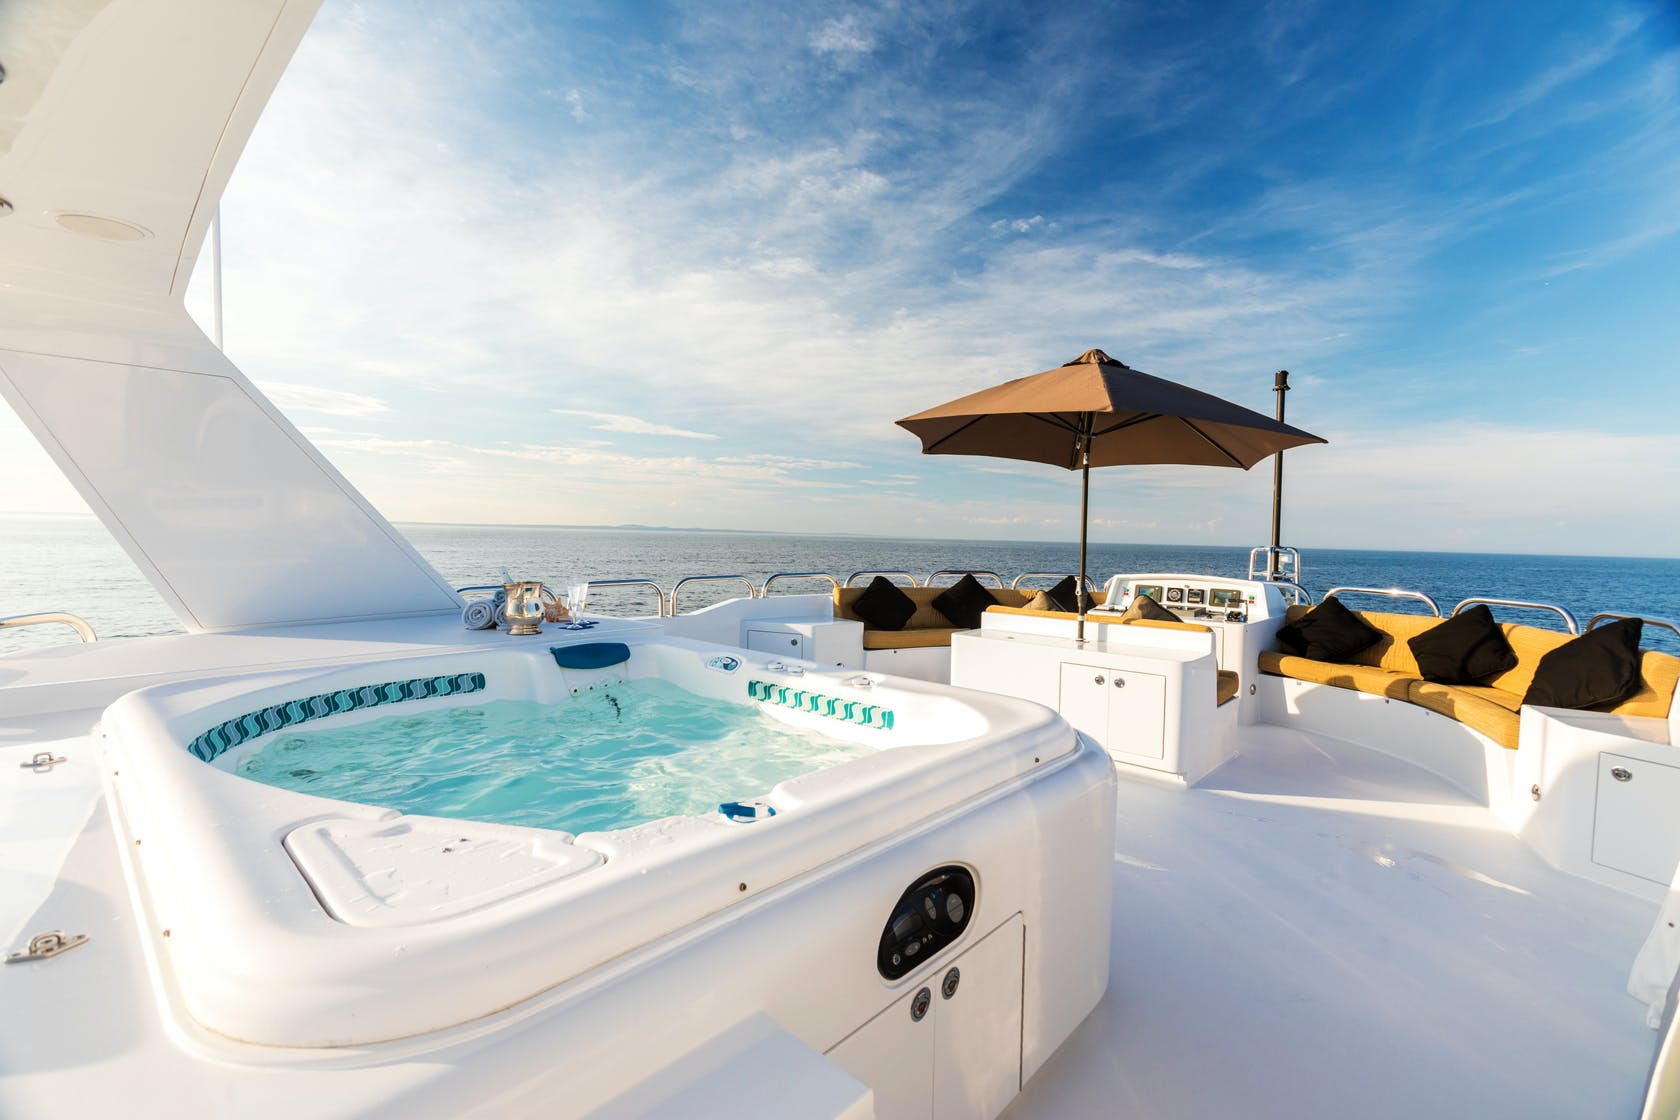 Seasonal Rates for SHOGUN Private Luxury Yacht For Charter